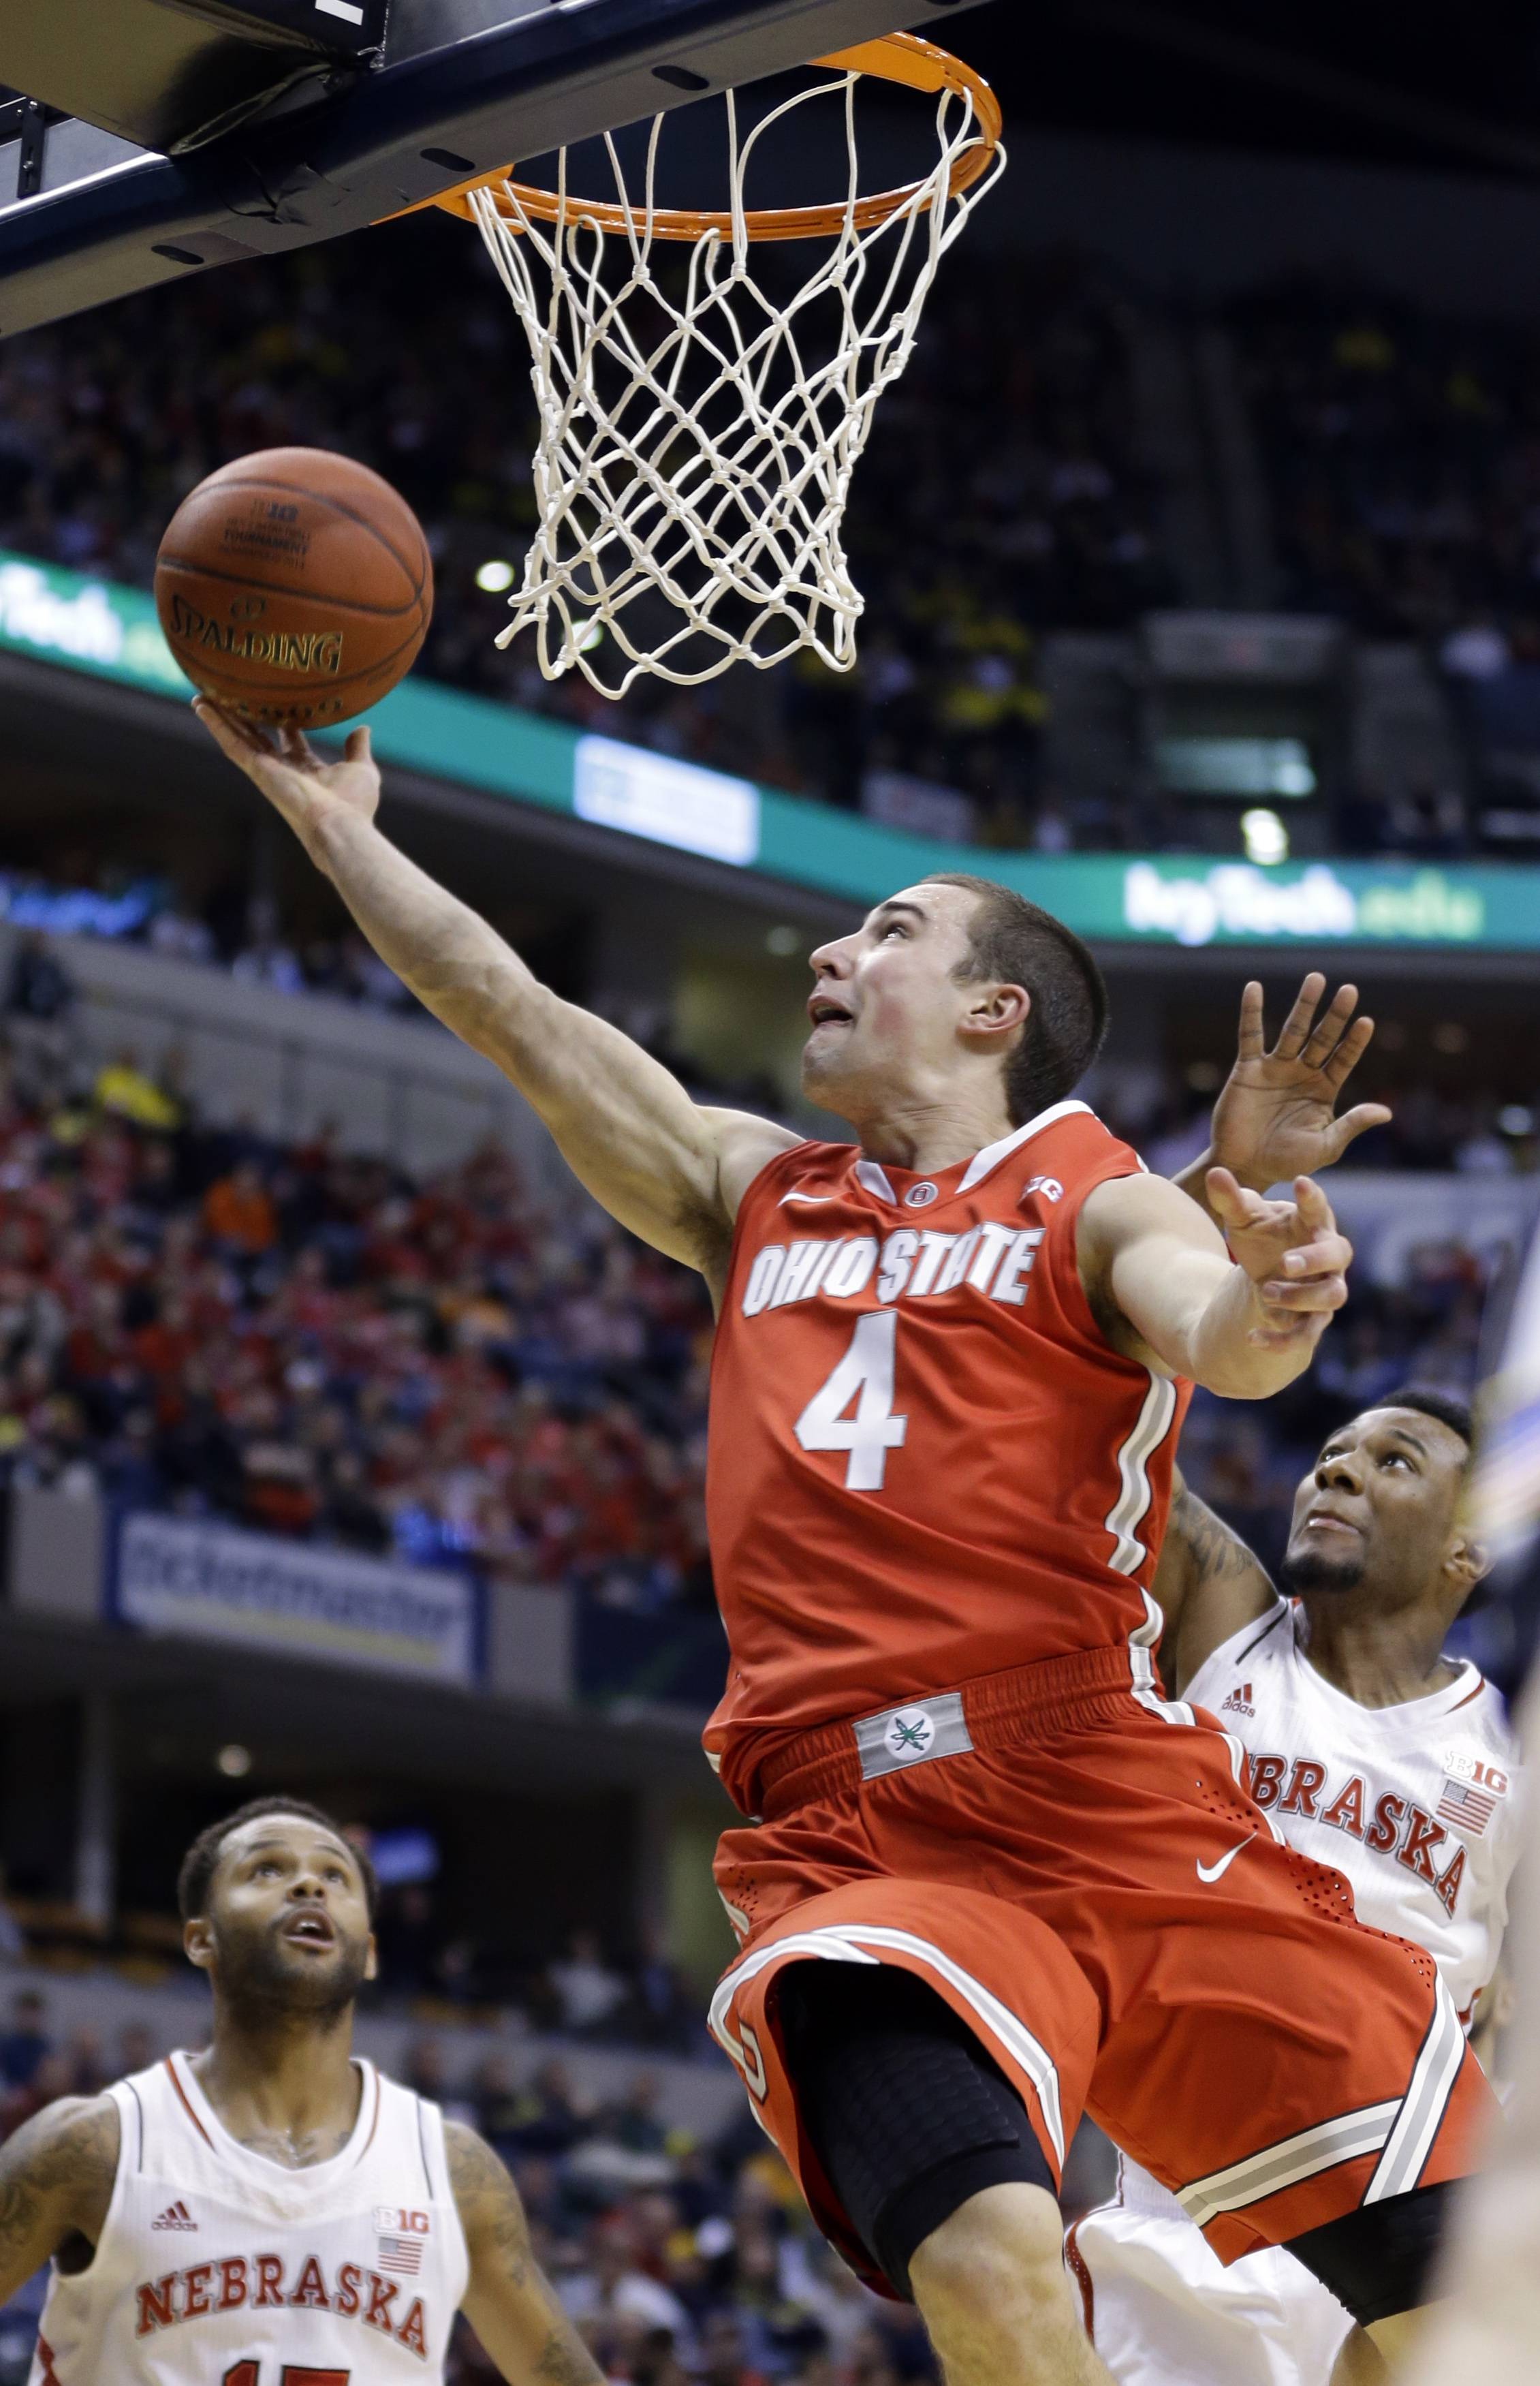 Ohio State guard Aaron Craft goes up for a shot against Nebraska on Friday in the quarterfinals of the Big Ten Conference tournament in Indianapolis.